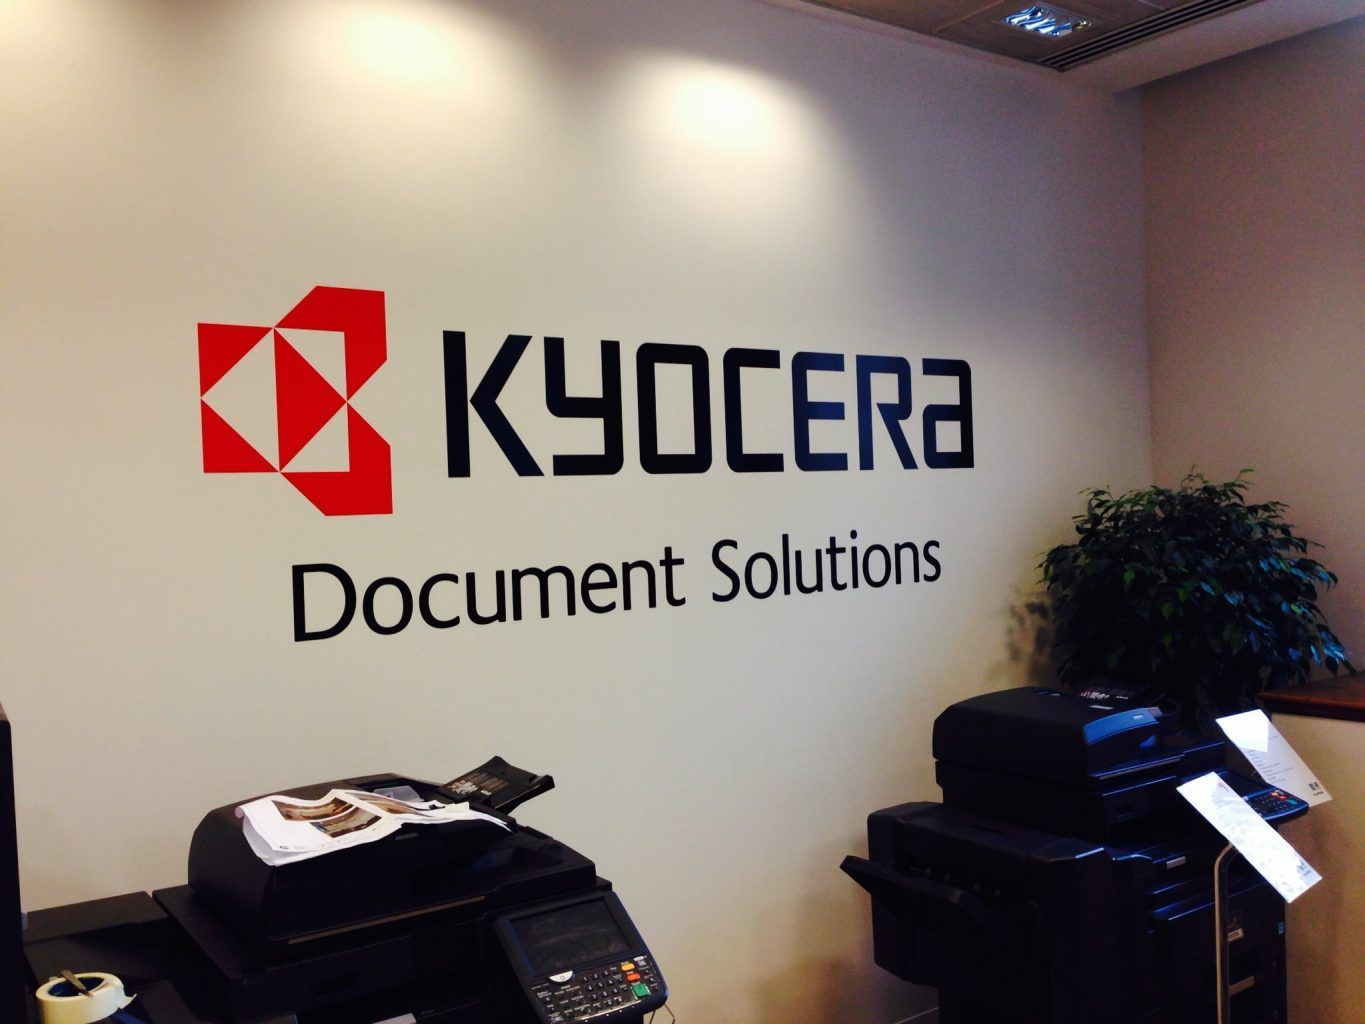 Kyocera wall graphics